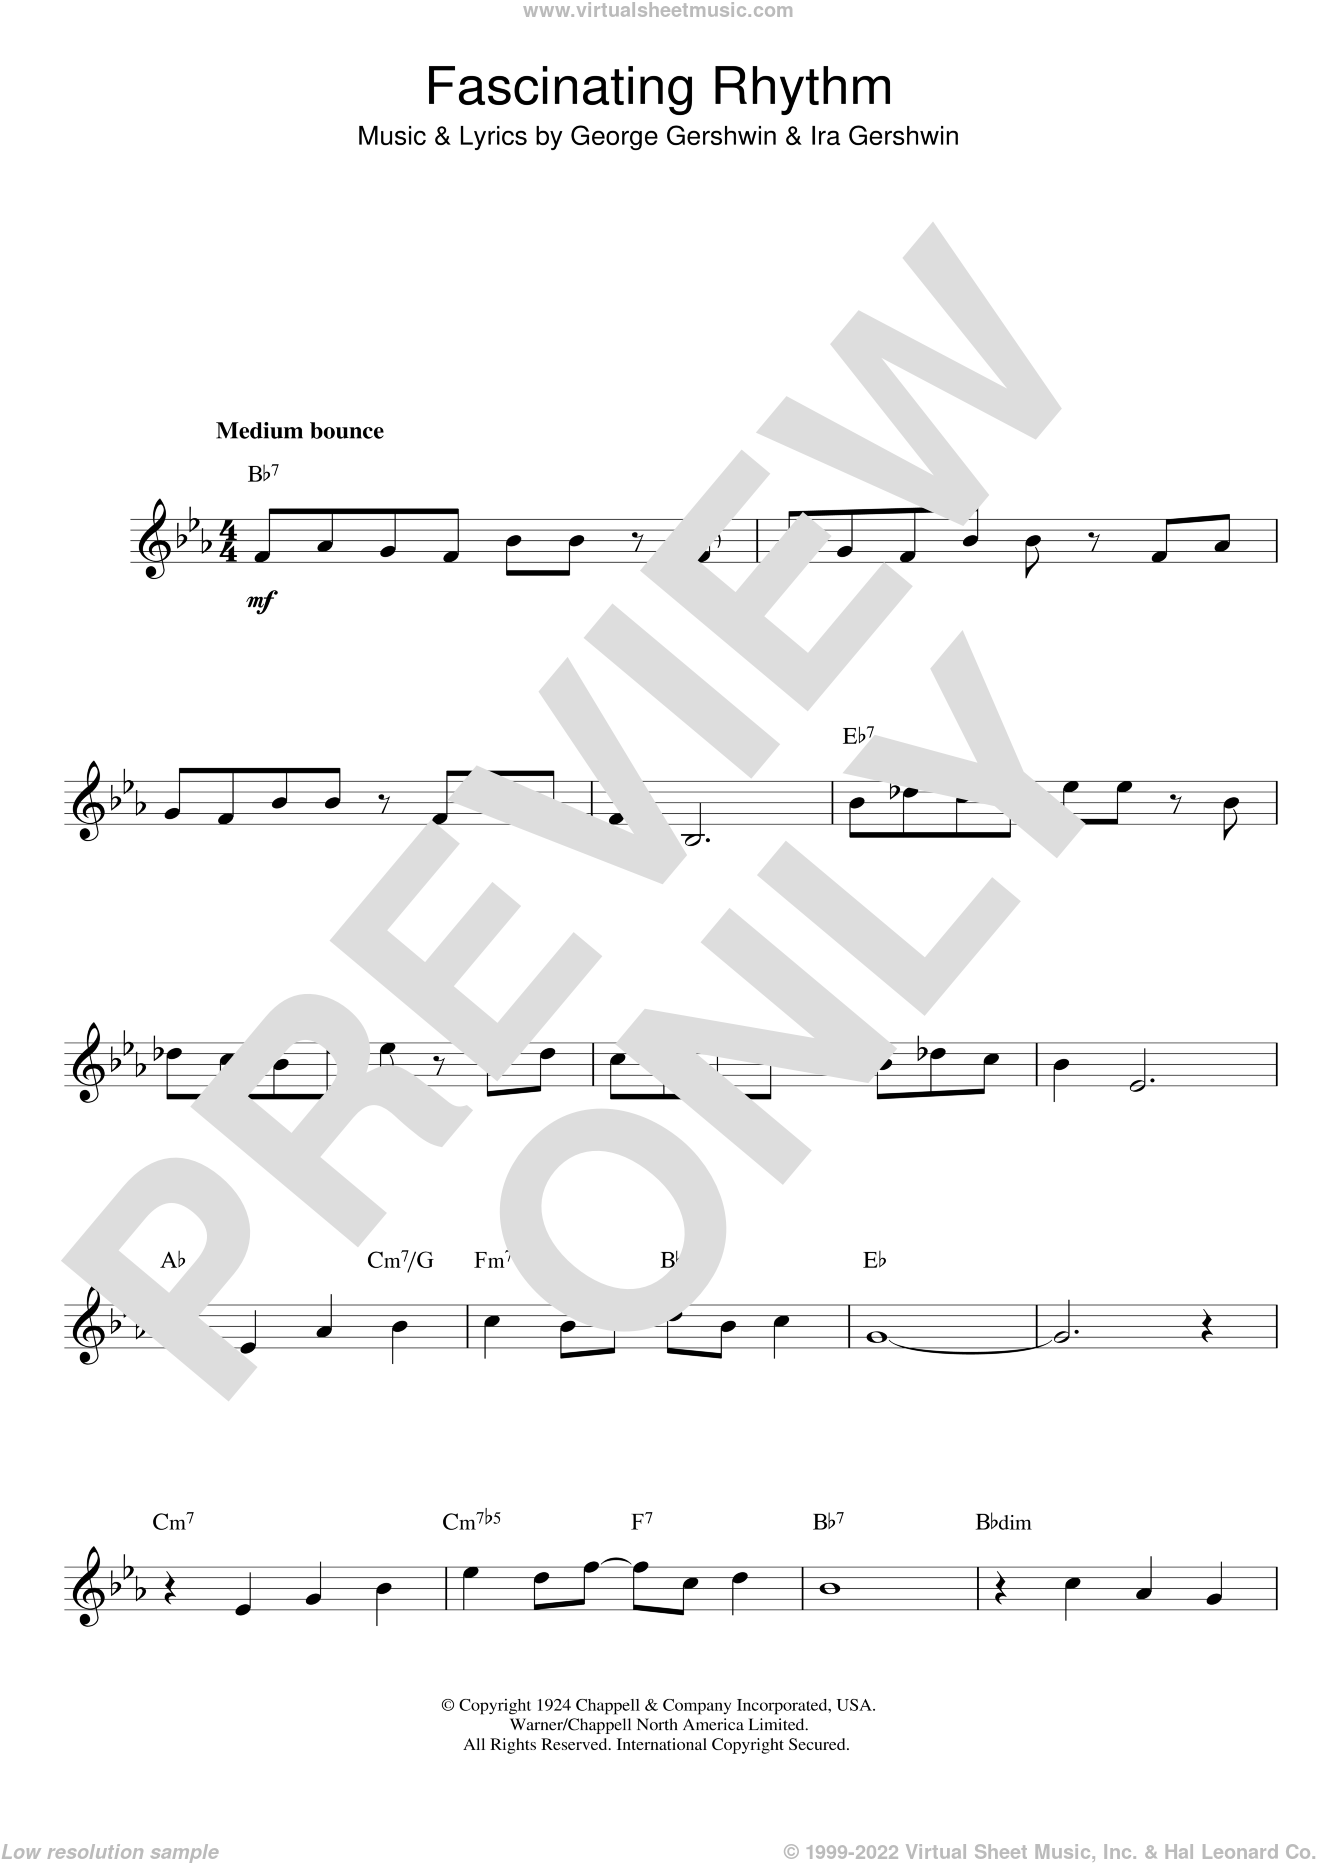 Fascinating Rhythm sheet music for voice and other instruments (fake book) by George Gershwin, Benny Goodman, Fred Astaire, De Moraes,V and Ira Gershwin, intermediate skill level